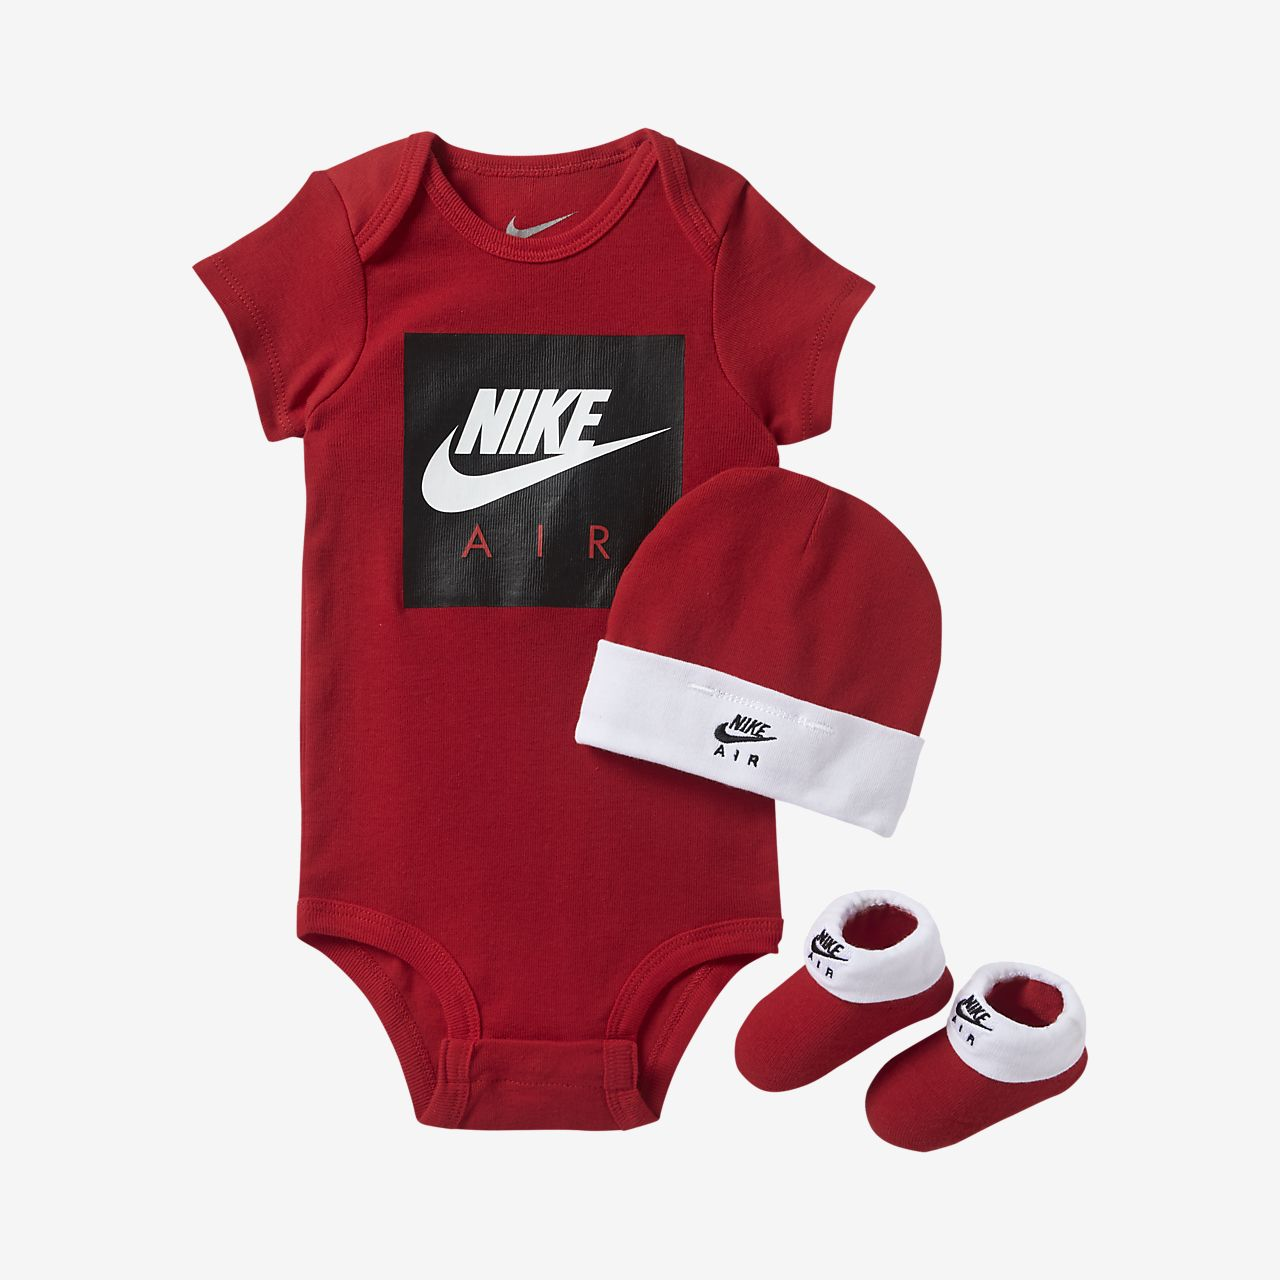 ... Nike Air Three-Piece Infant Set